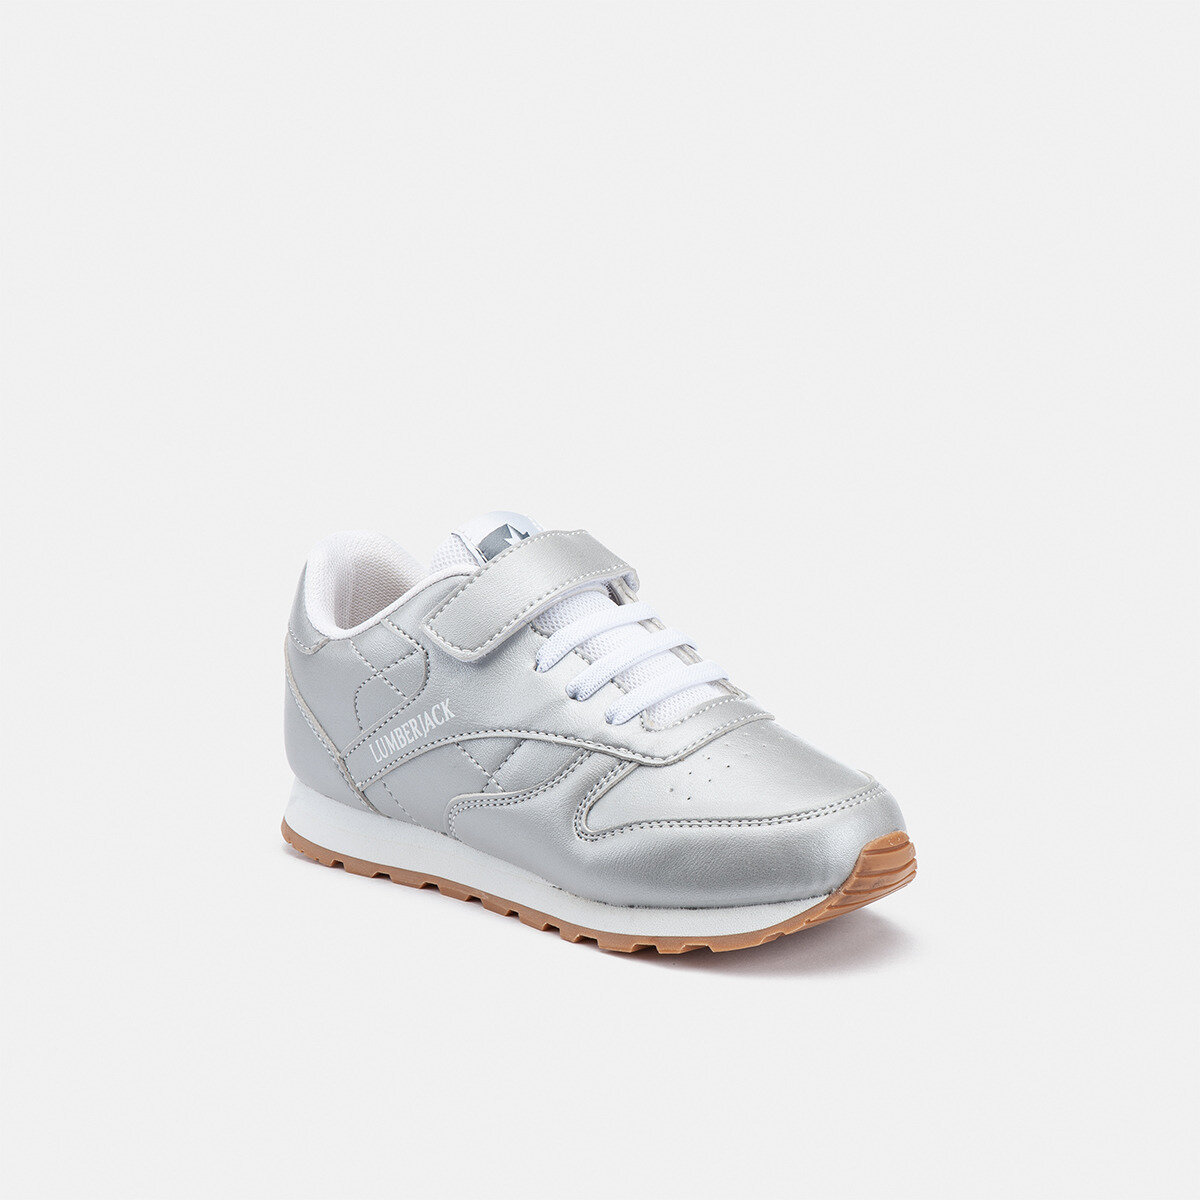 HELLO JR SILVER Girl Running shoes